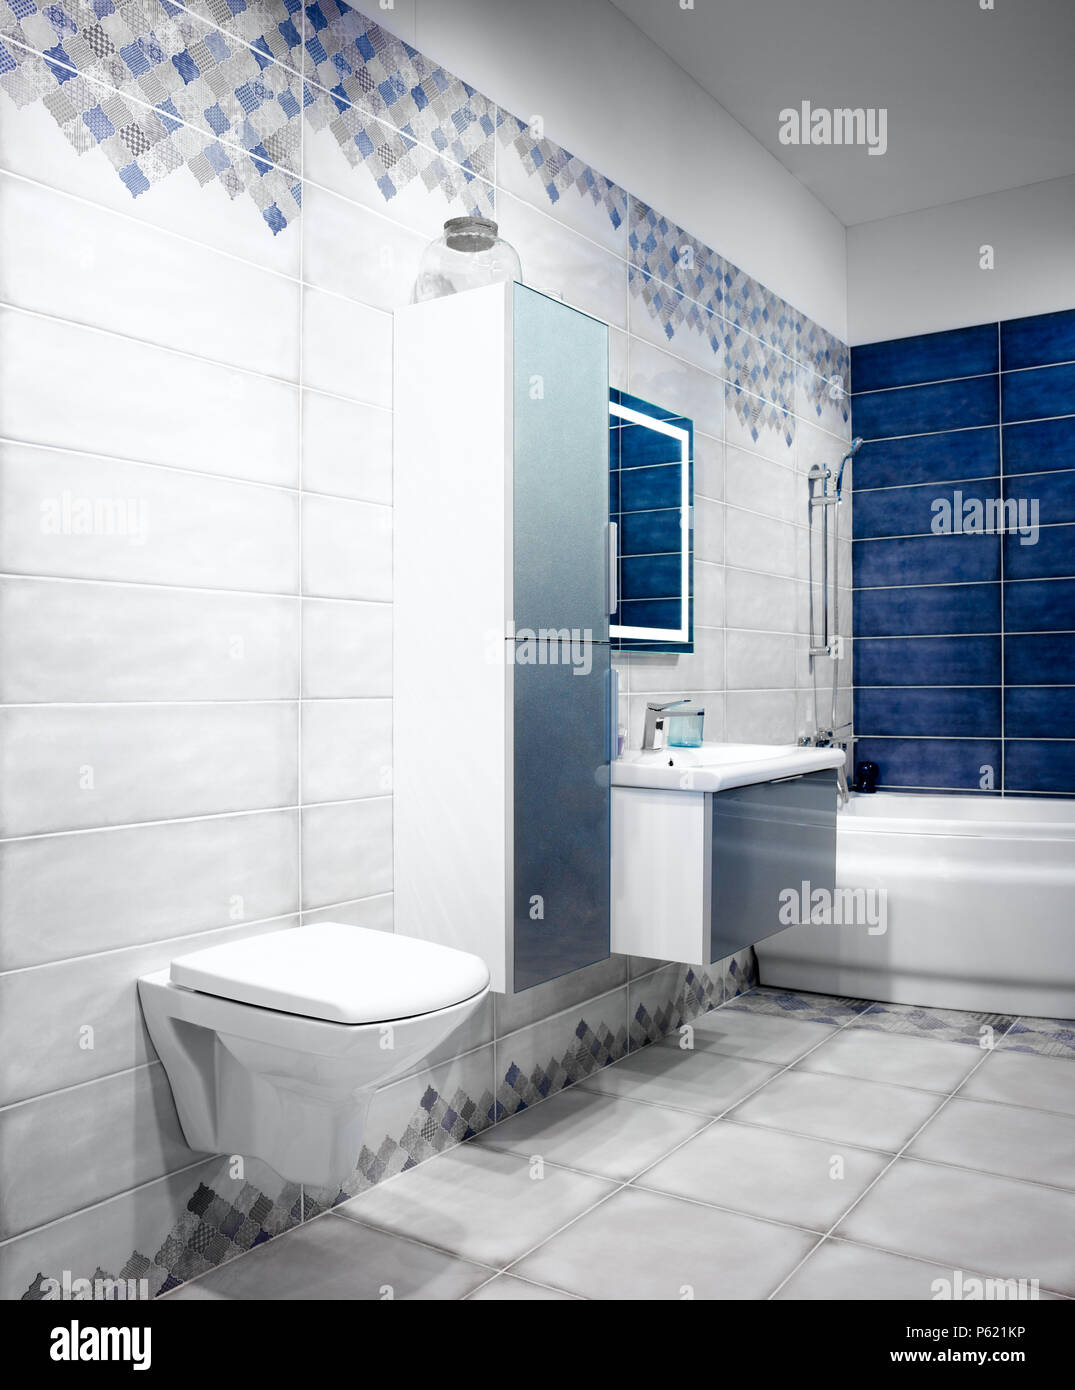 White And Blue Tones Modern Bathroom Interior With Hanging Toilet, Sink,  Bath, Faucet, Mirror, Shower, Furniture And Accessories.